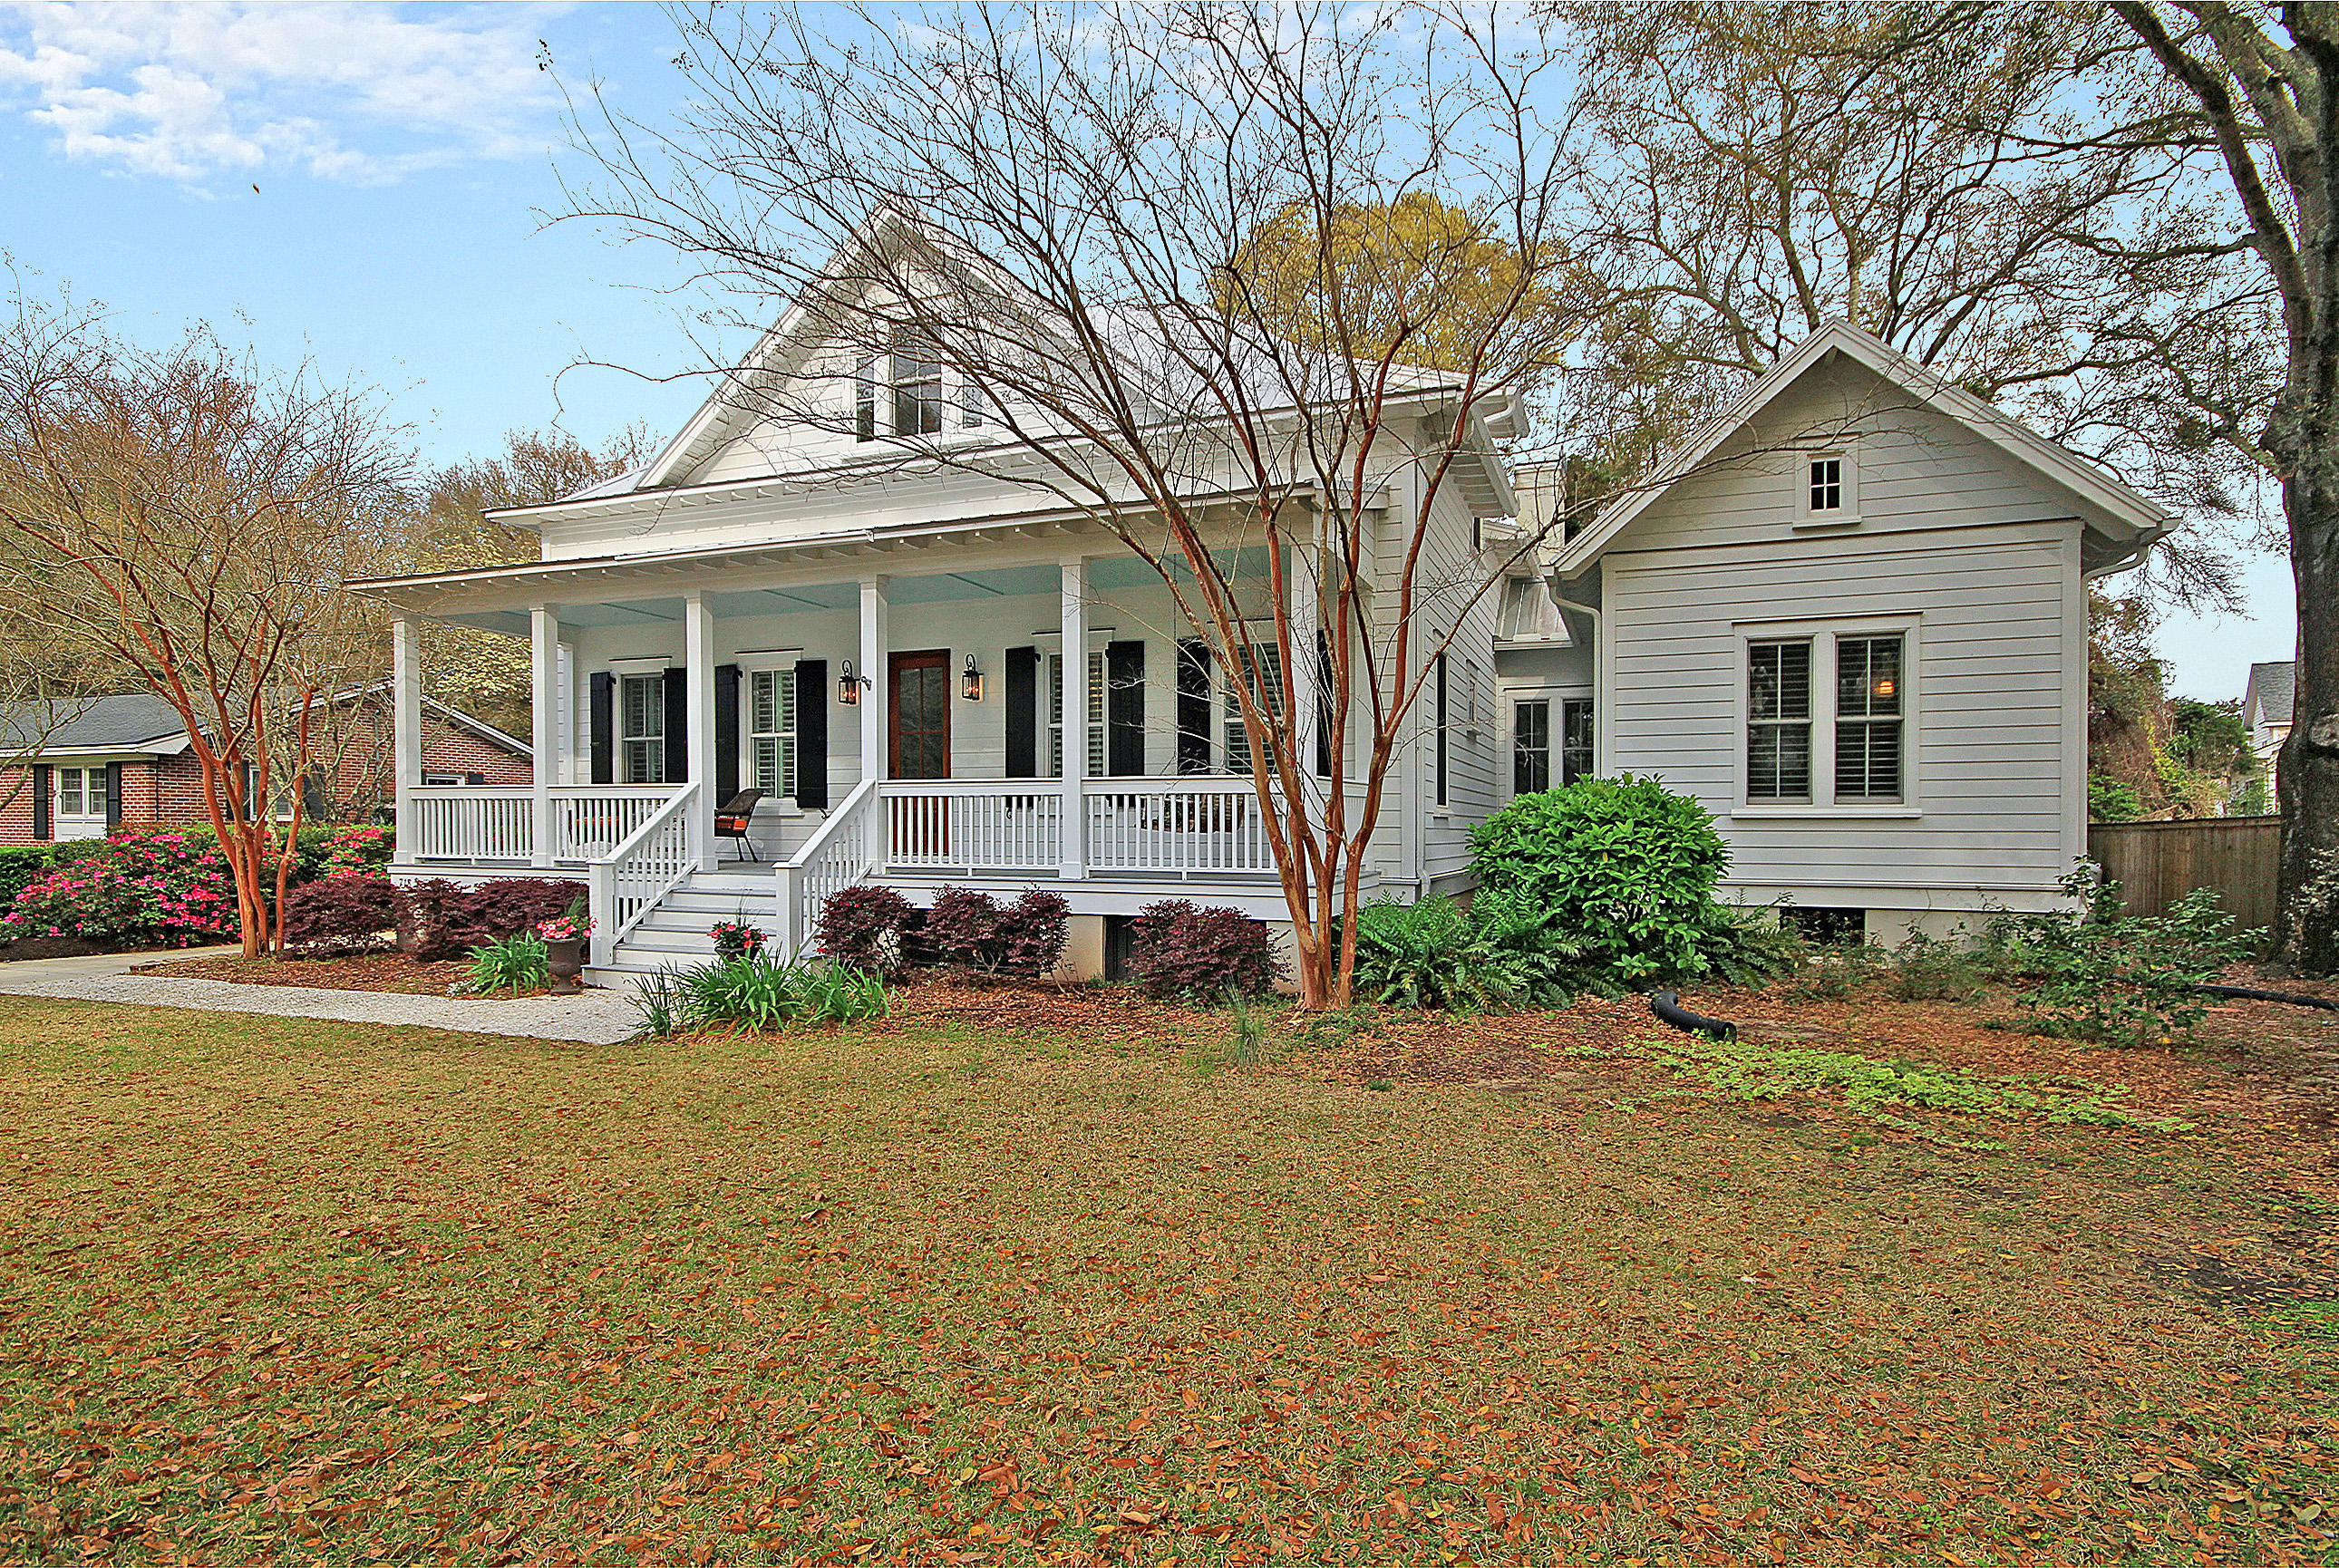 Old Mt Pleasant Homes For Sale - 718 Magnolia, Mount Pleasant, SC - 21